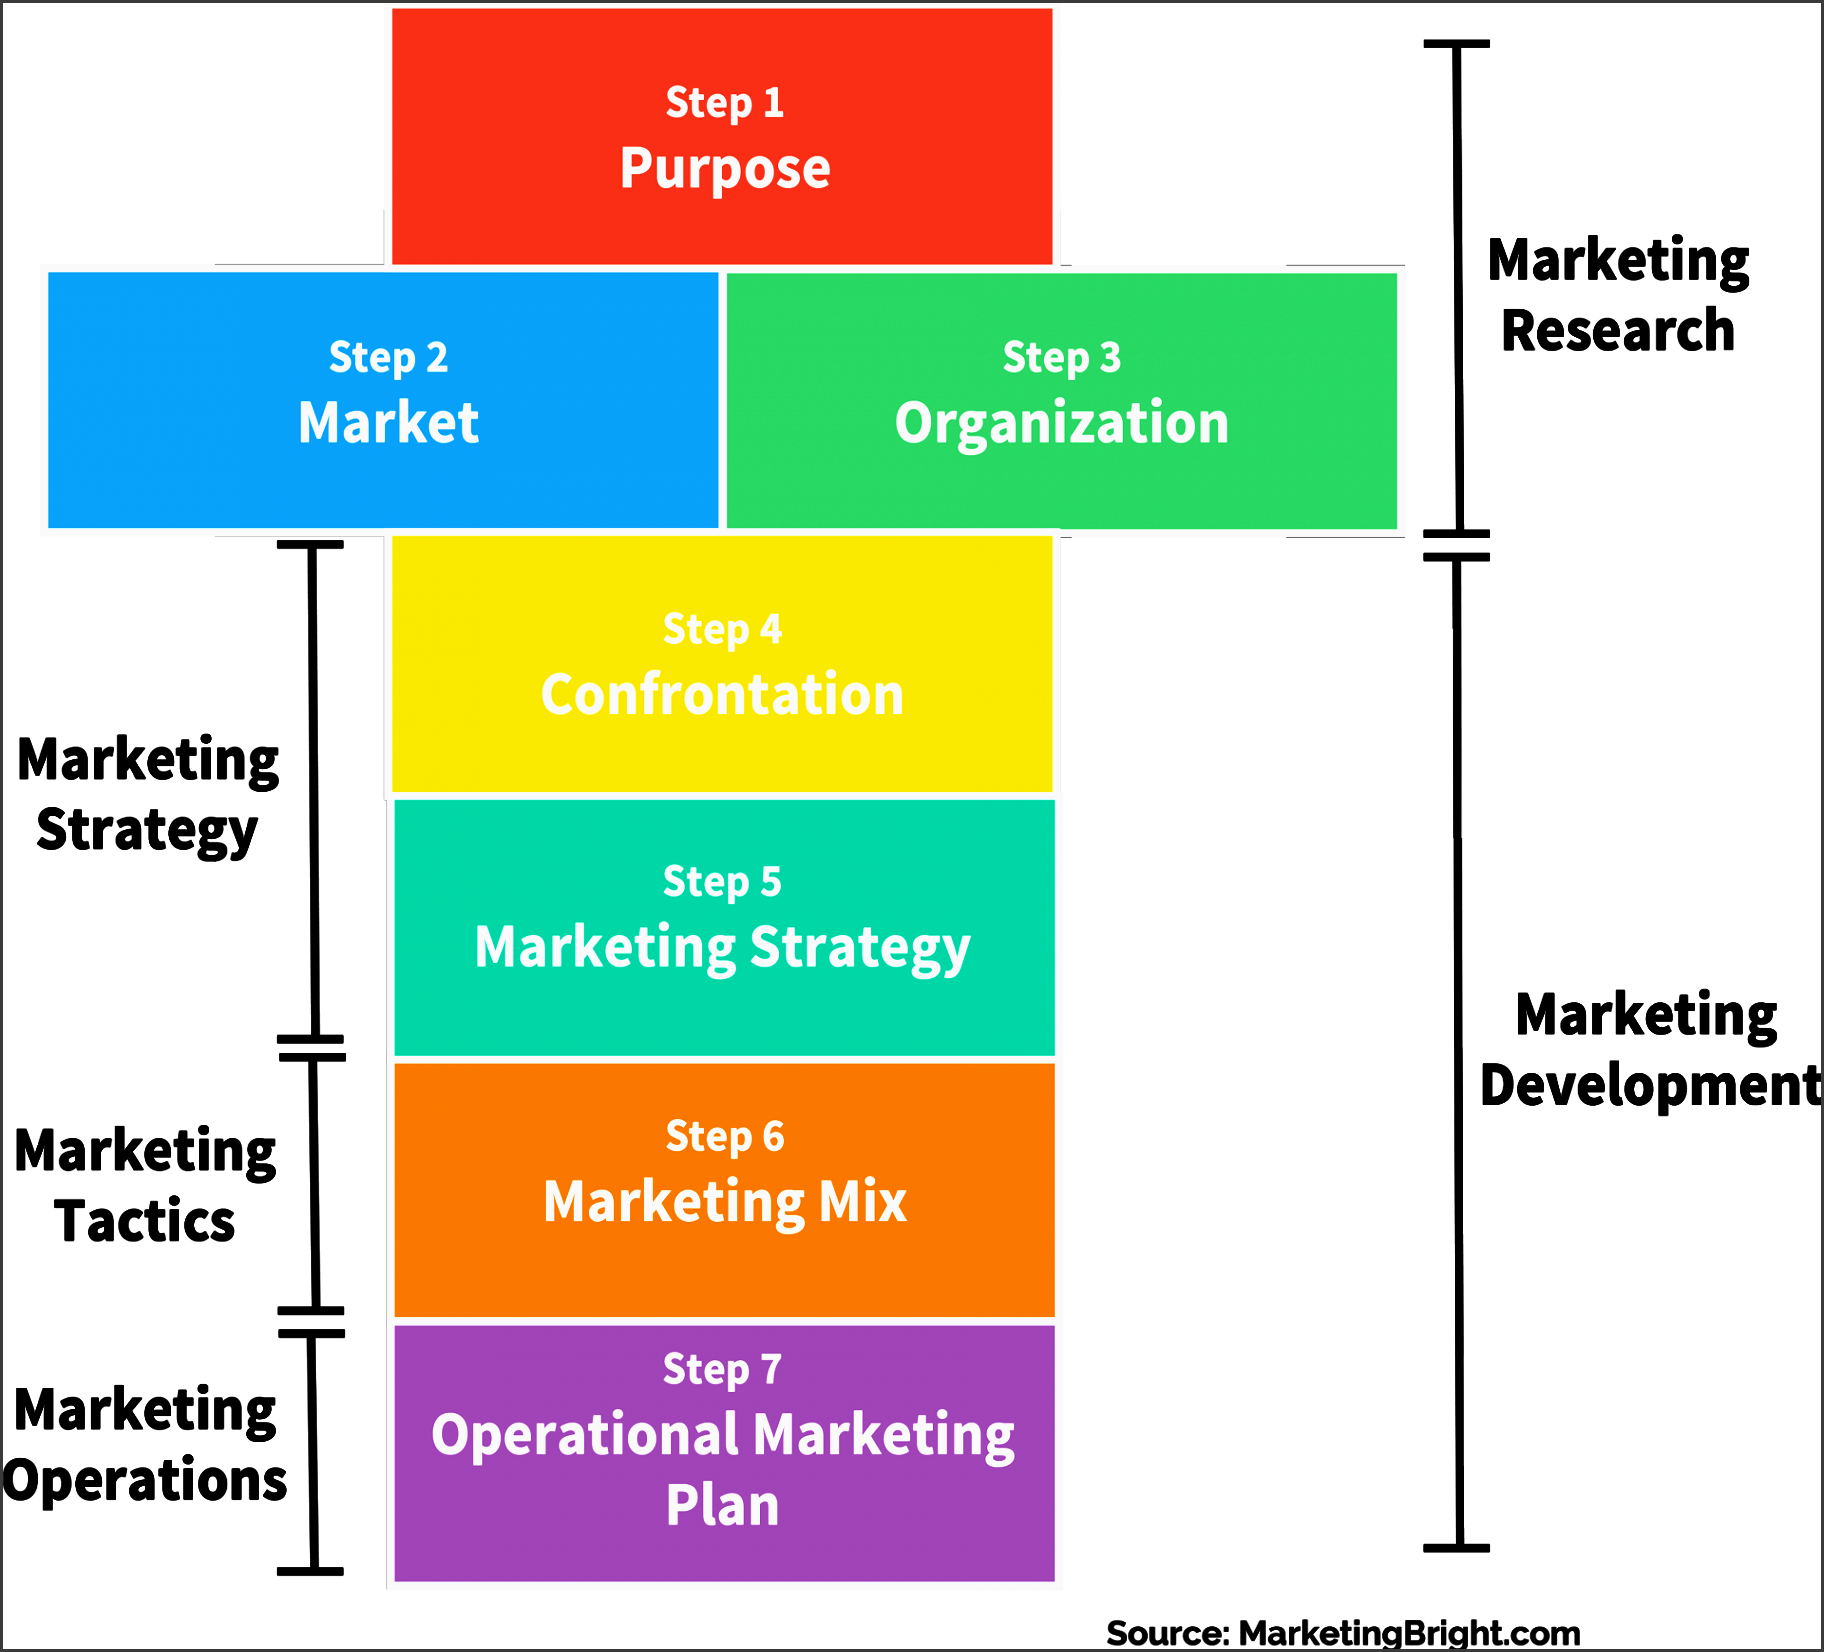 an analysis of a supermarket project A swot analysis is when a business analyzes its strengths, weaknesses, opportunities, and threats  i have a marketing degree, and own it involves specifying the objective of the business venture or project and identifying the internal and external factors that are favorable and unfavorable.